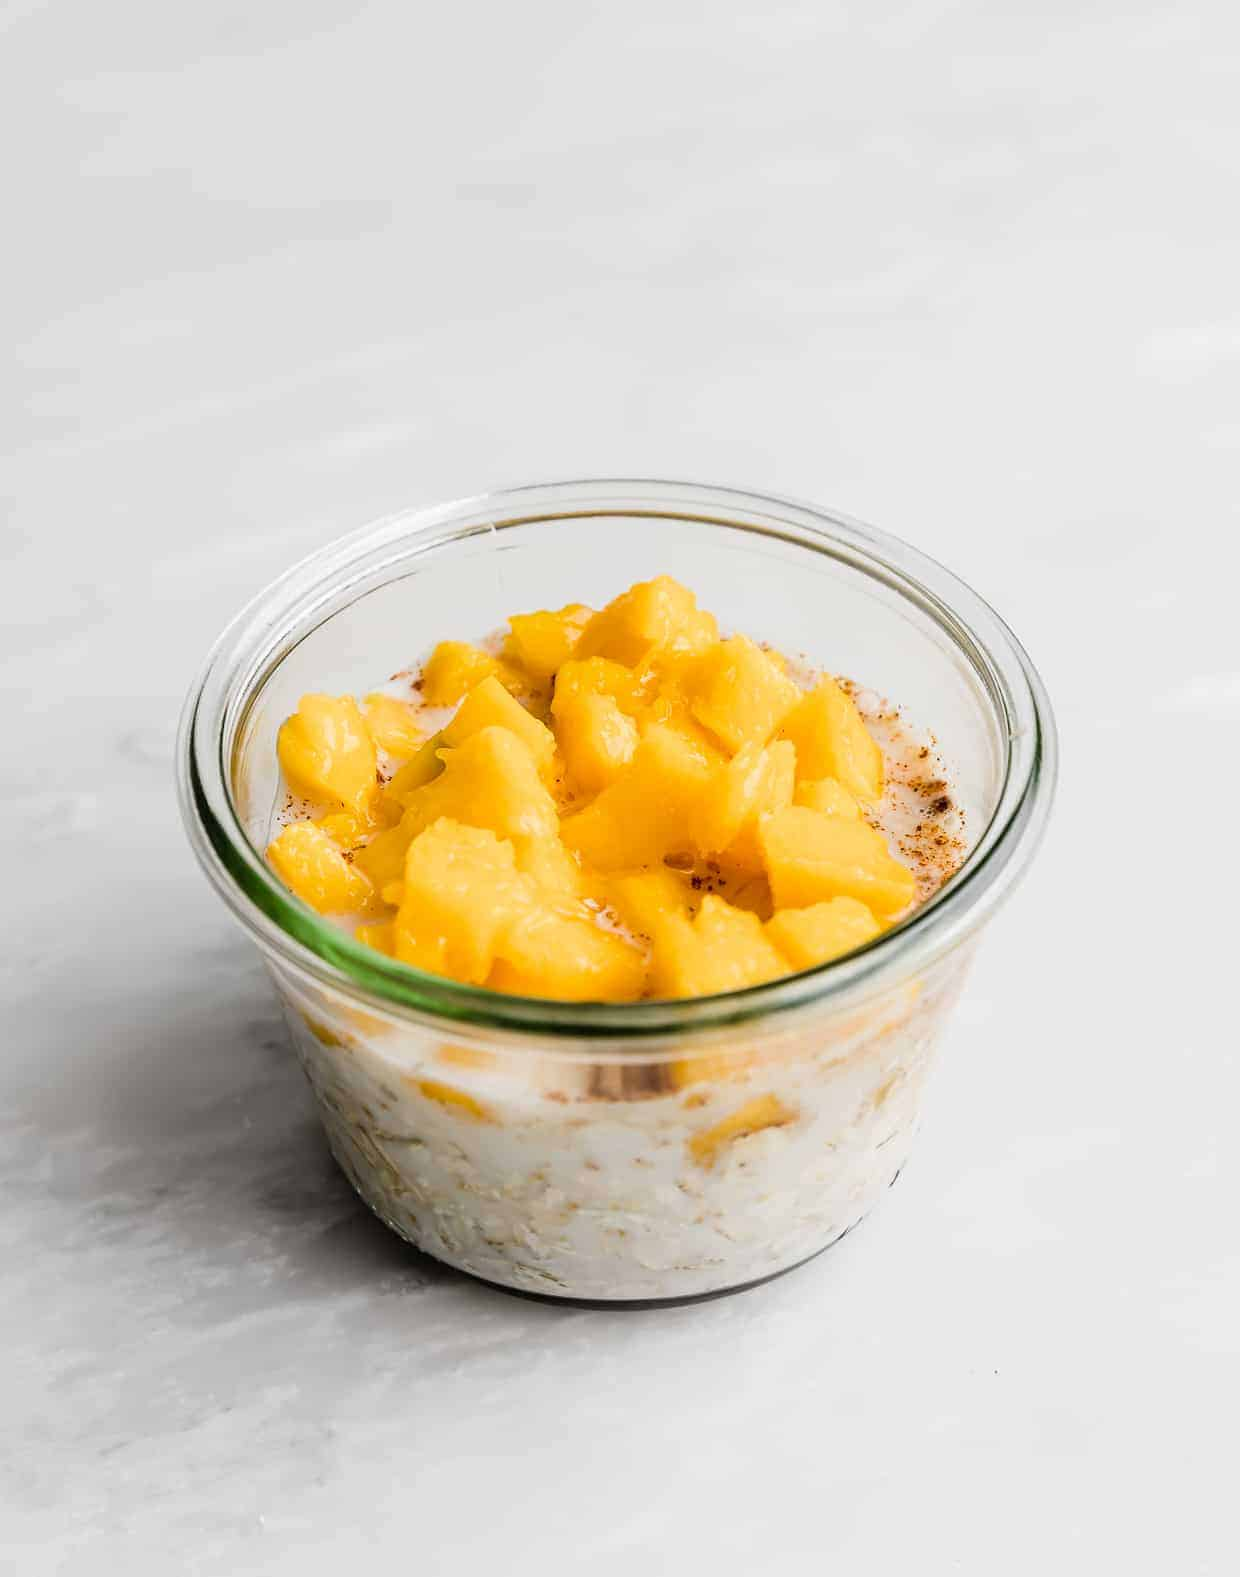 Diced mangos overtop of a milk and oat mixture in a glass jar.